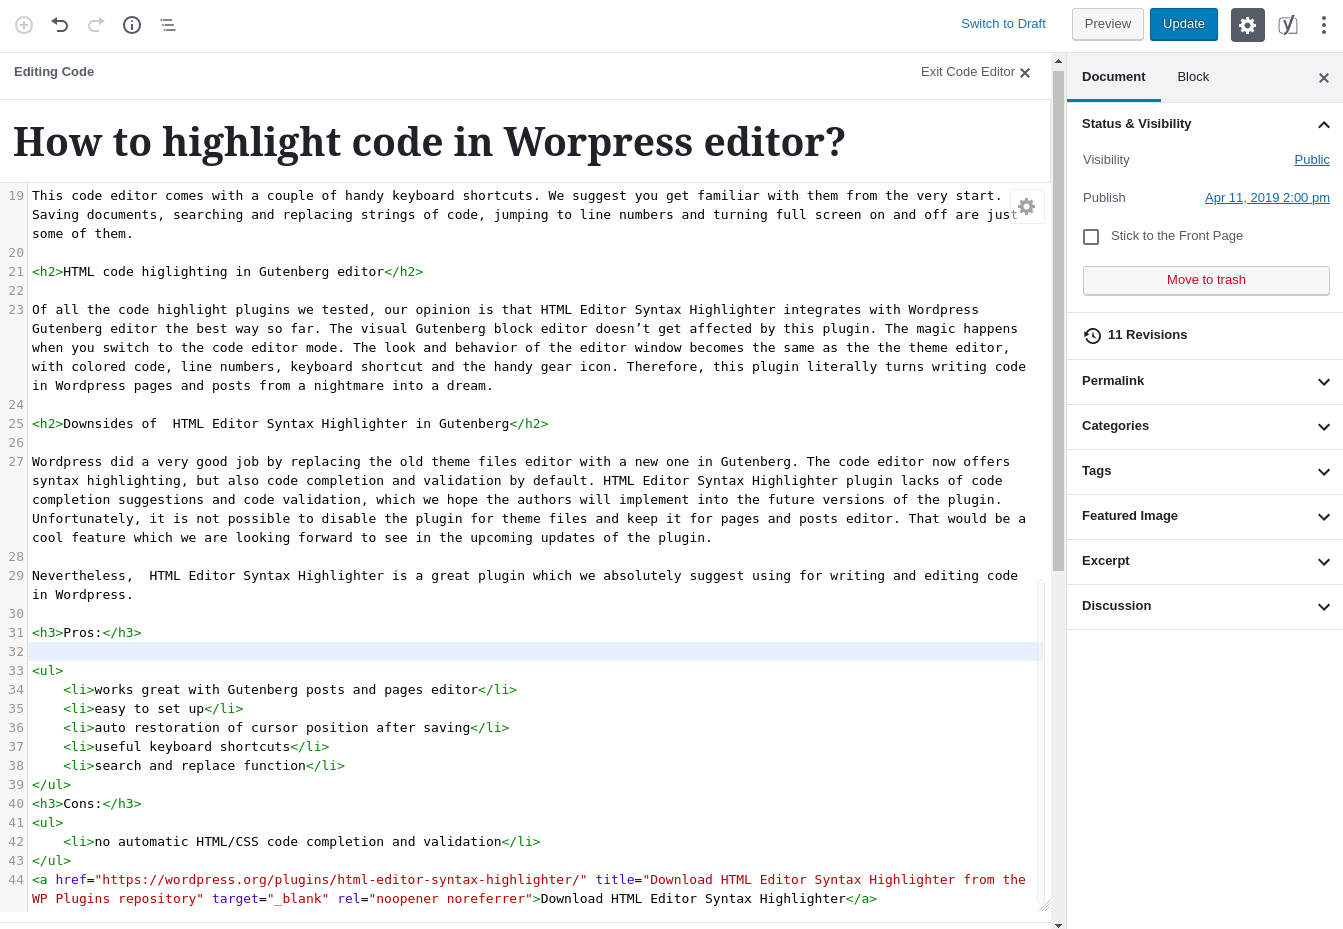 How to highlight code in Wordpress editor using a code highlighter